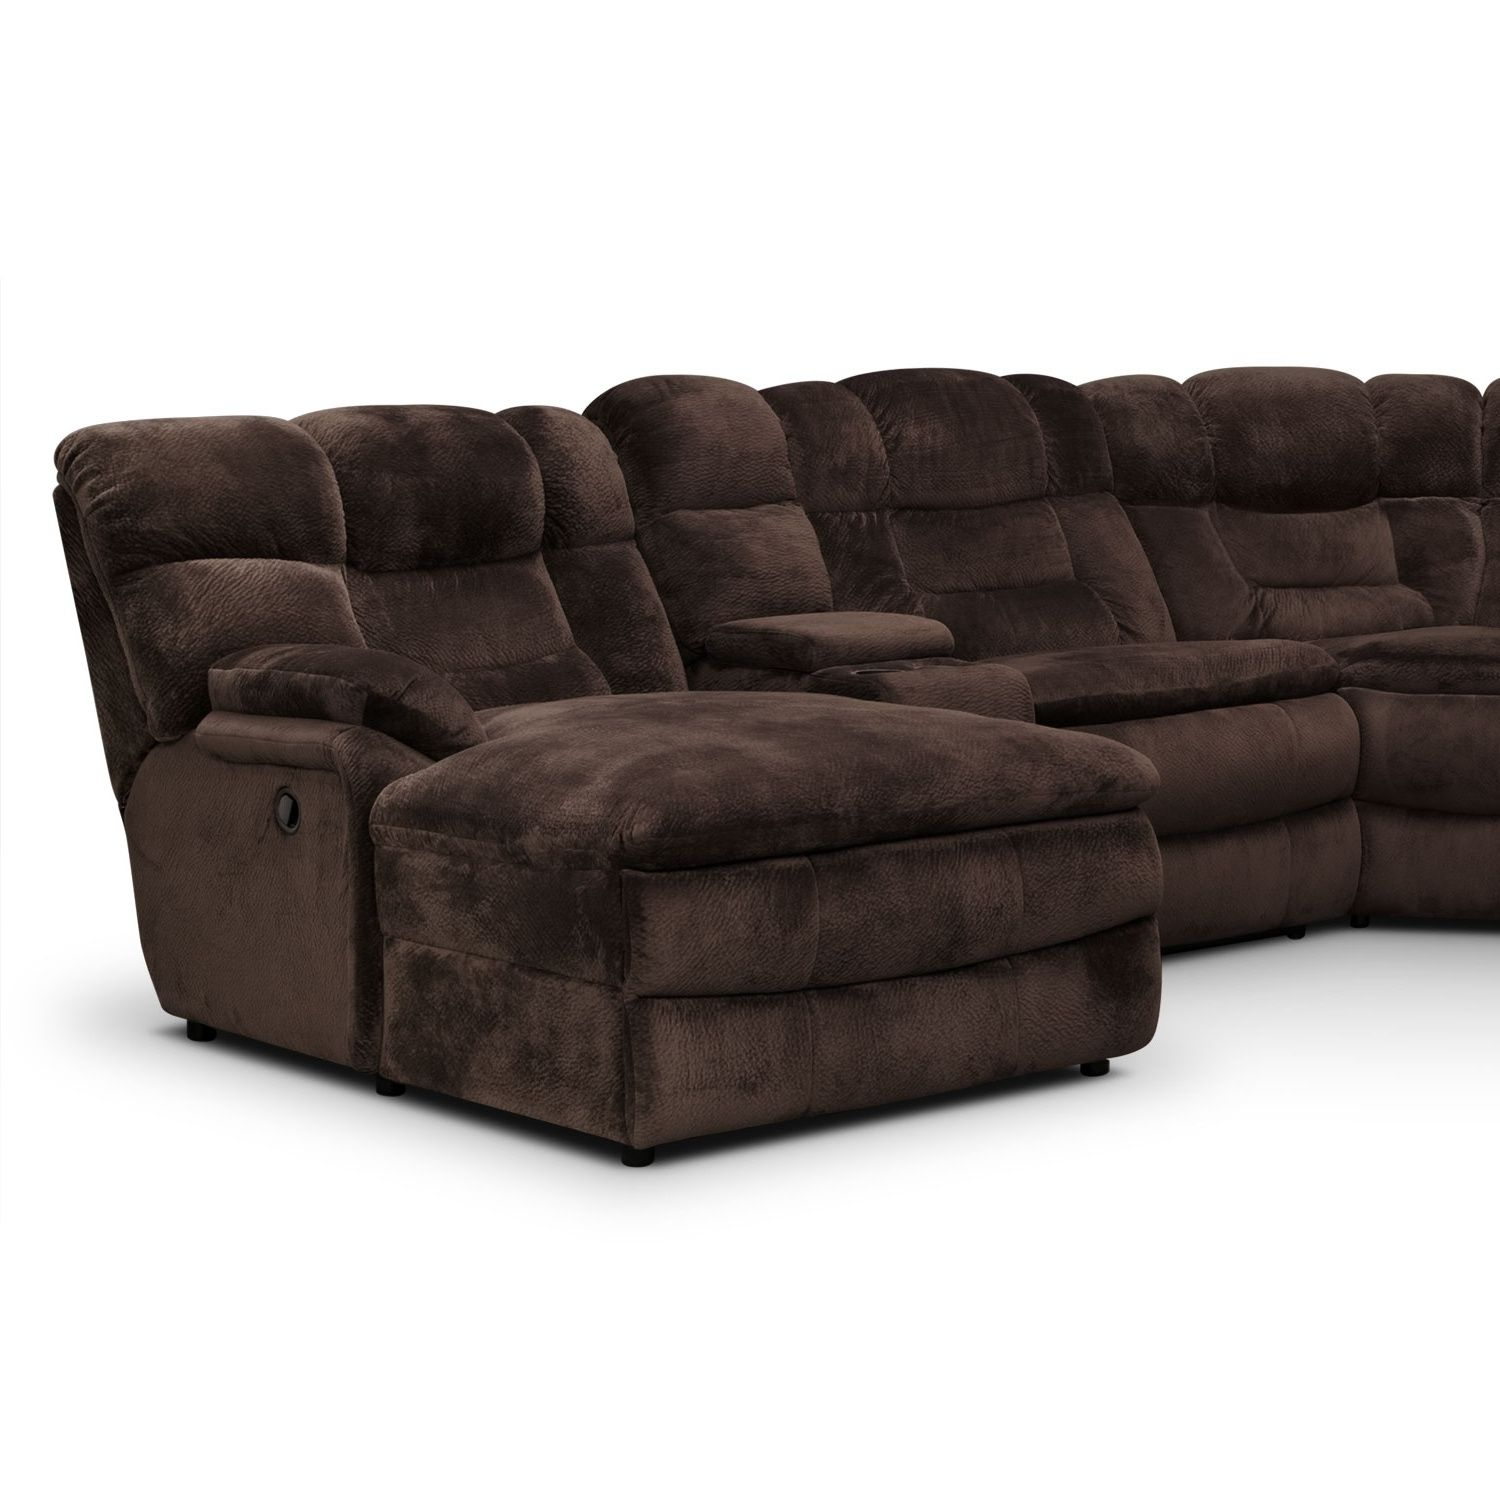 Foot Rest Couch Home Design Pinterest